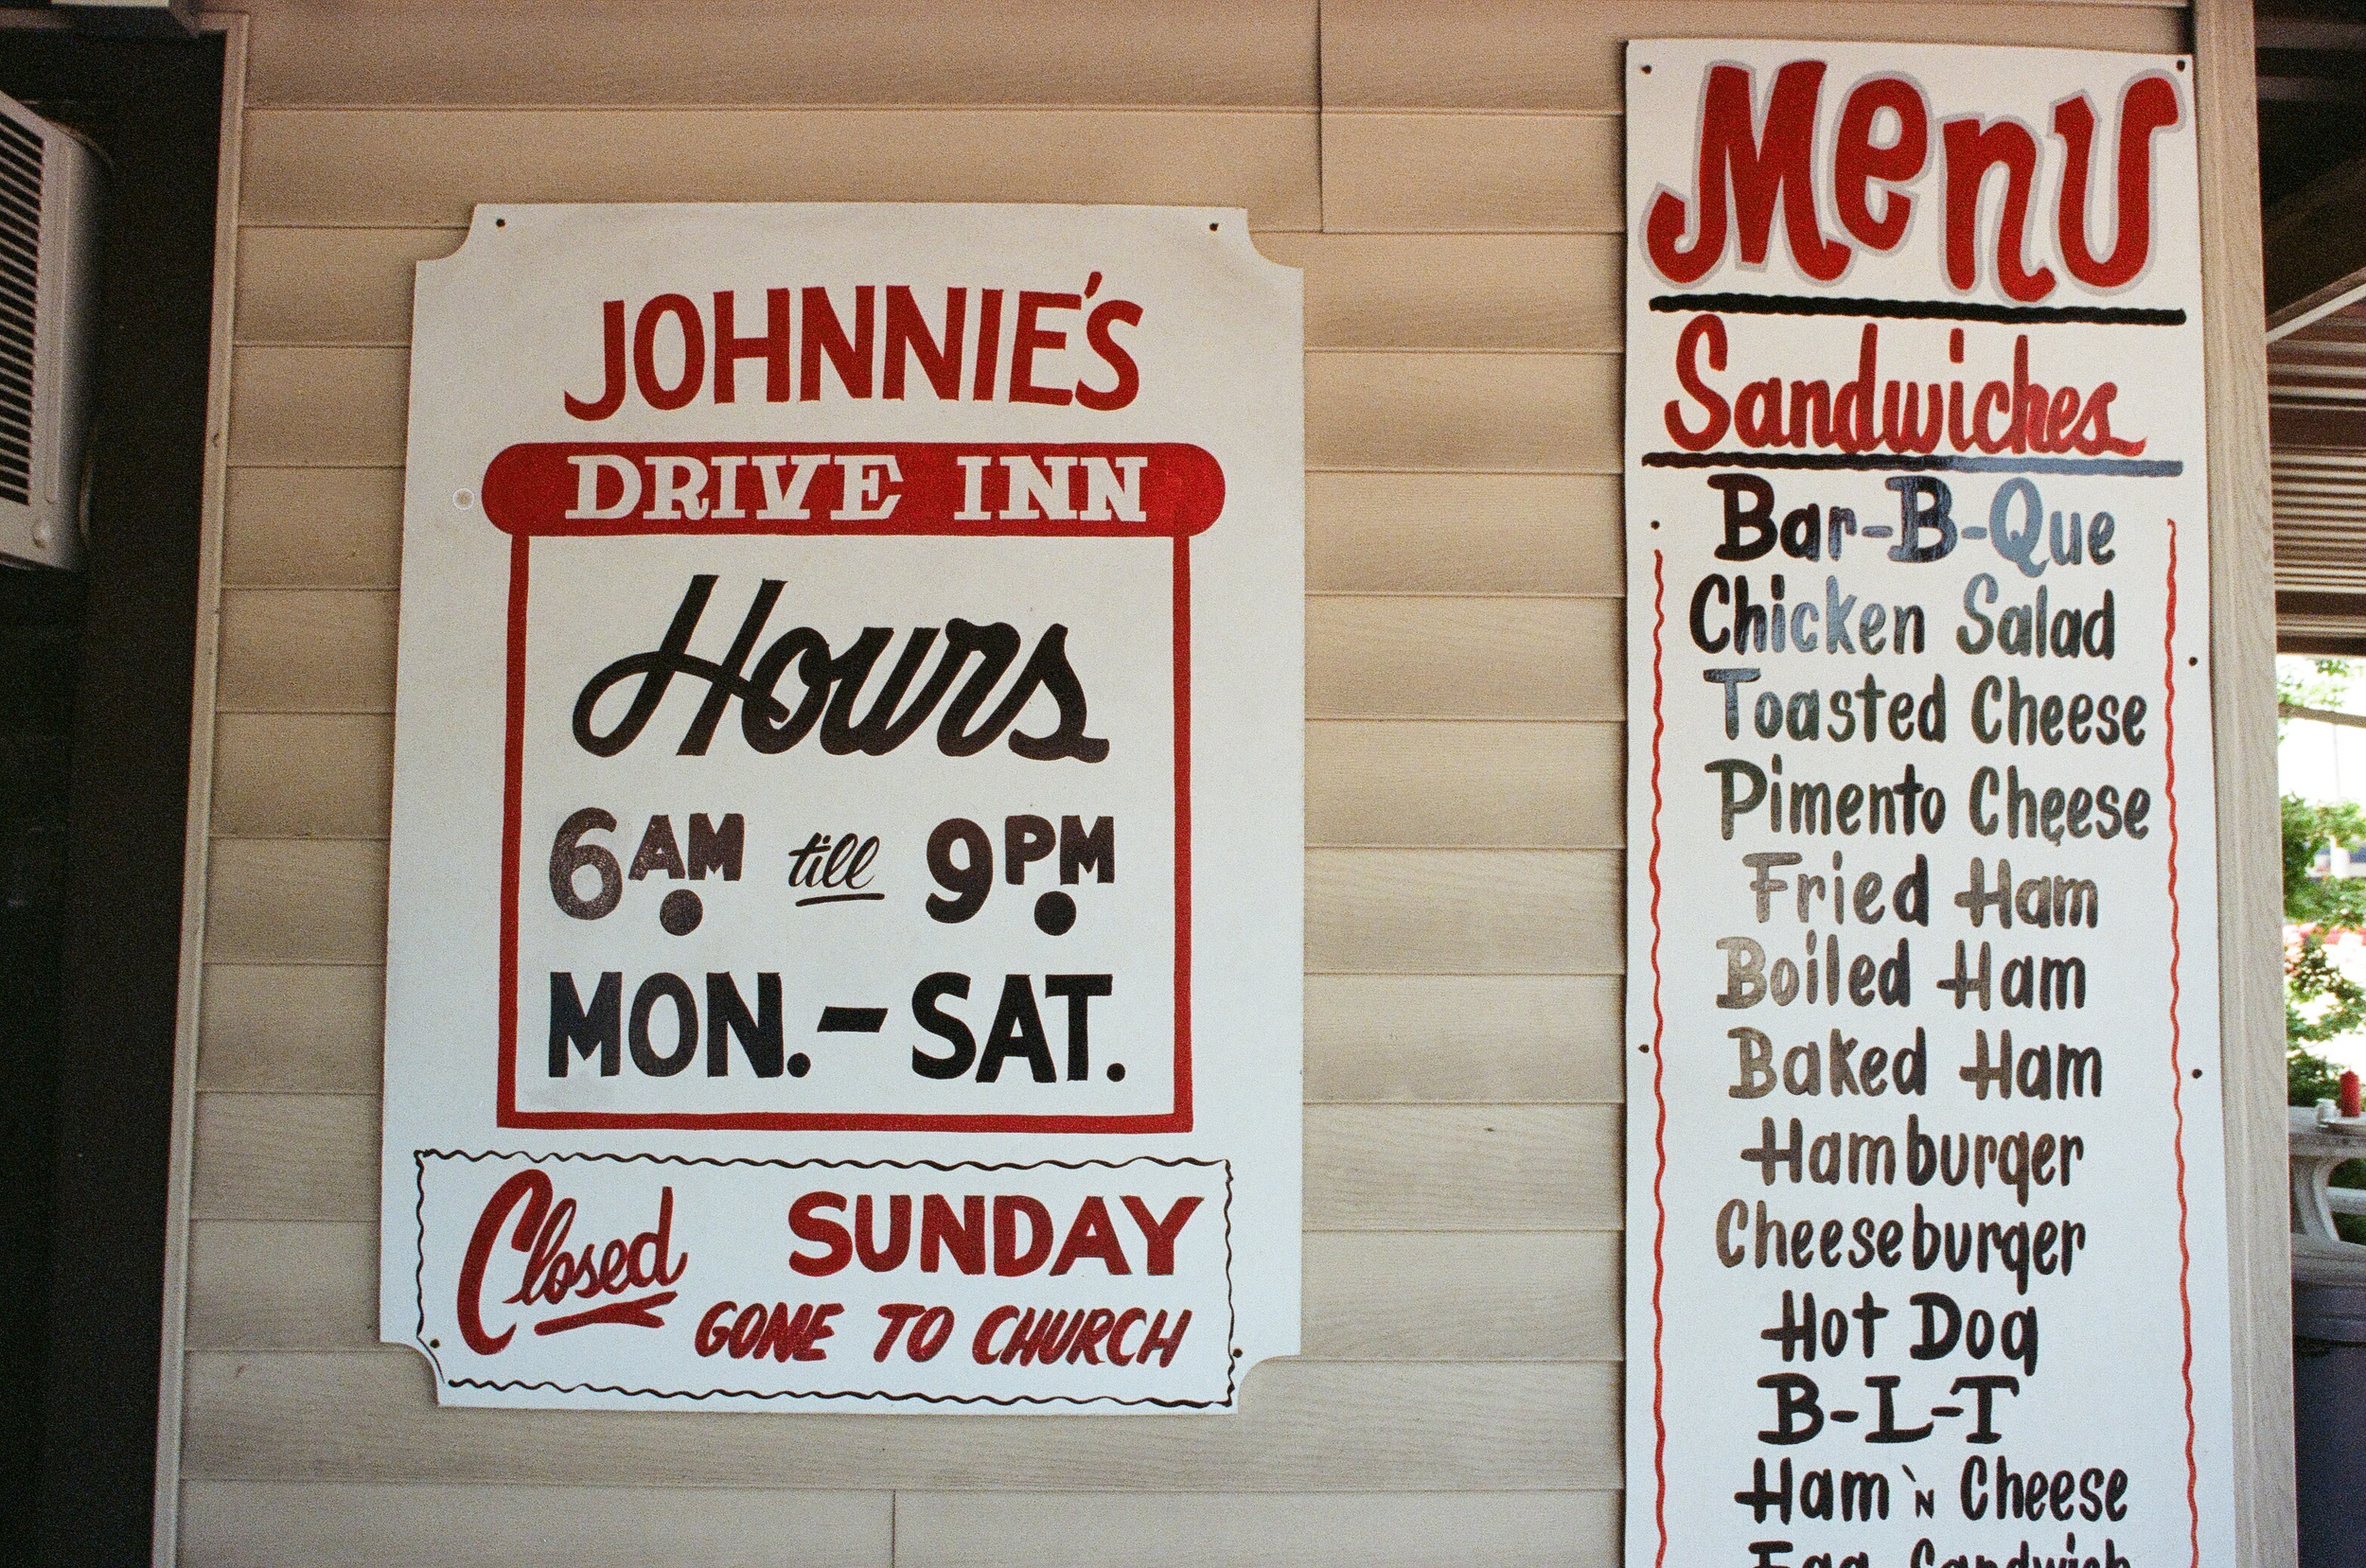 The menu at Johnnie's.